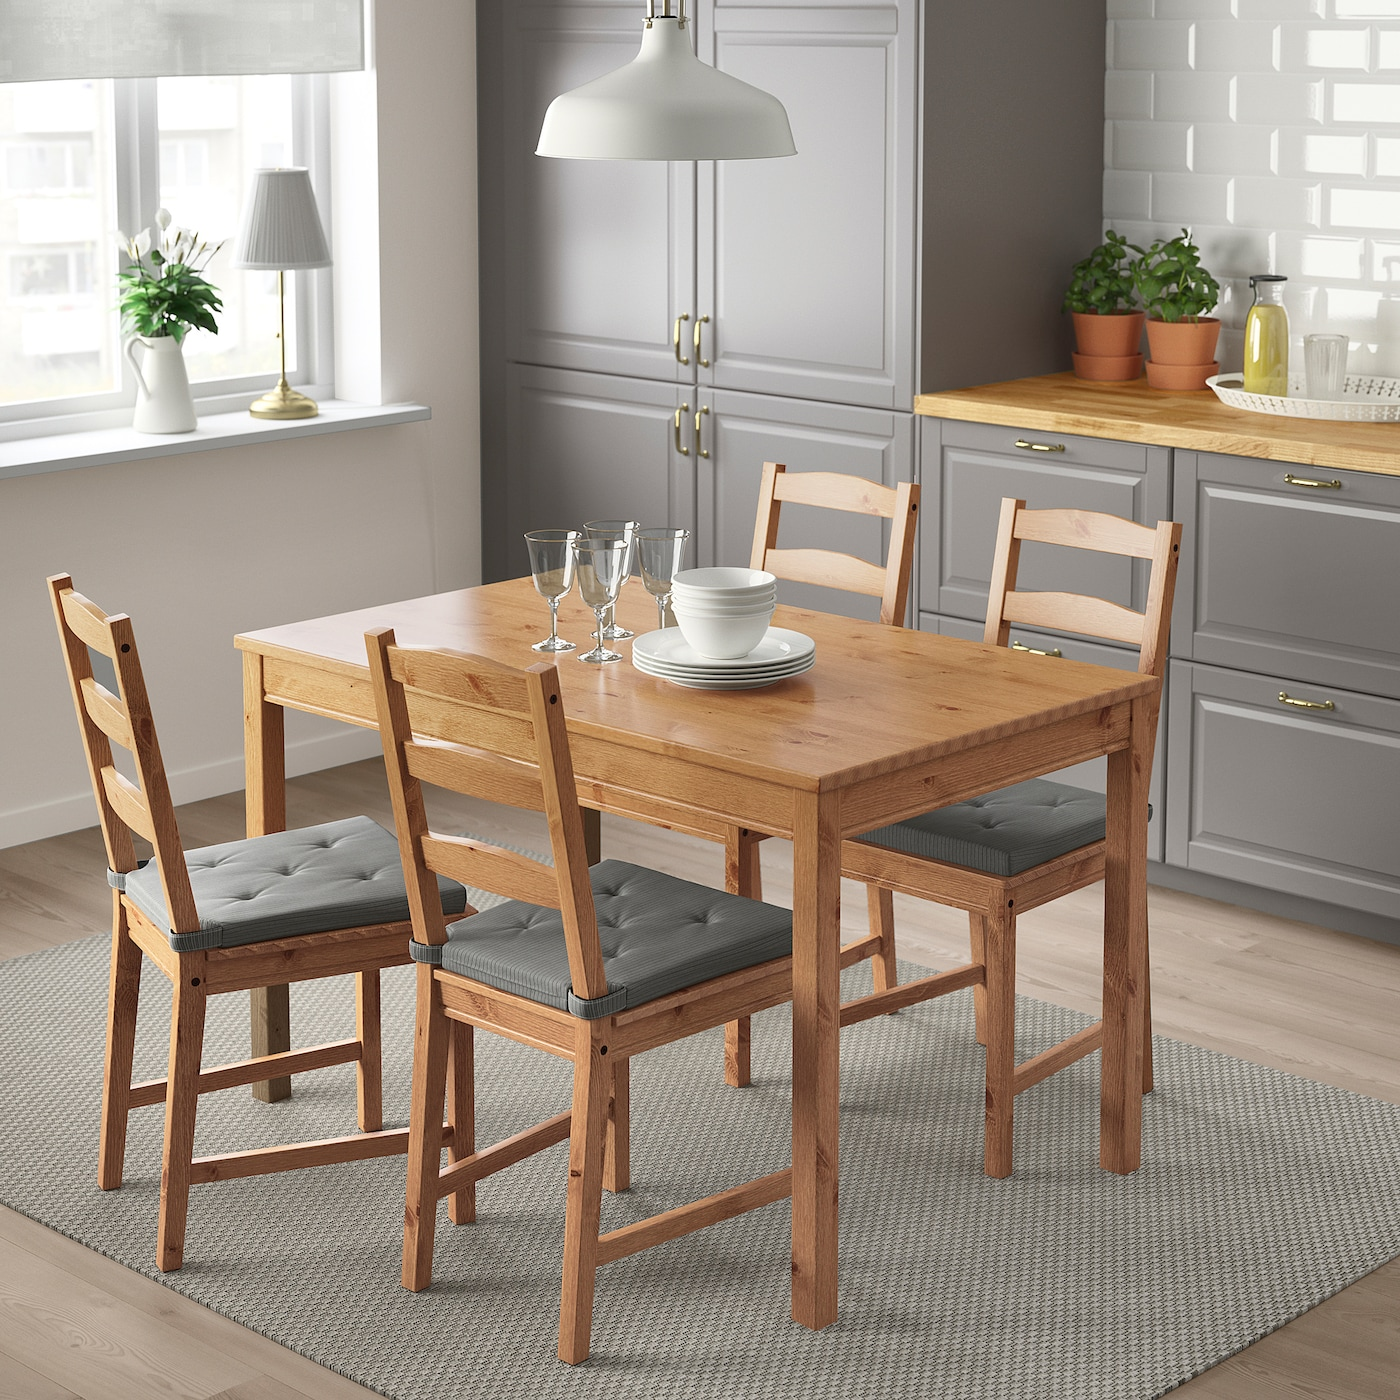 JOKKMOKK Wooden Dining Table /& 4 Chairs,Solid Pine,Antique Stain,Fast Delivery